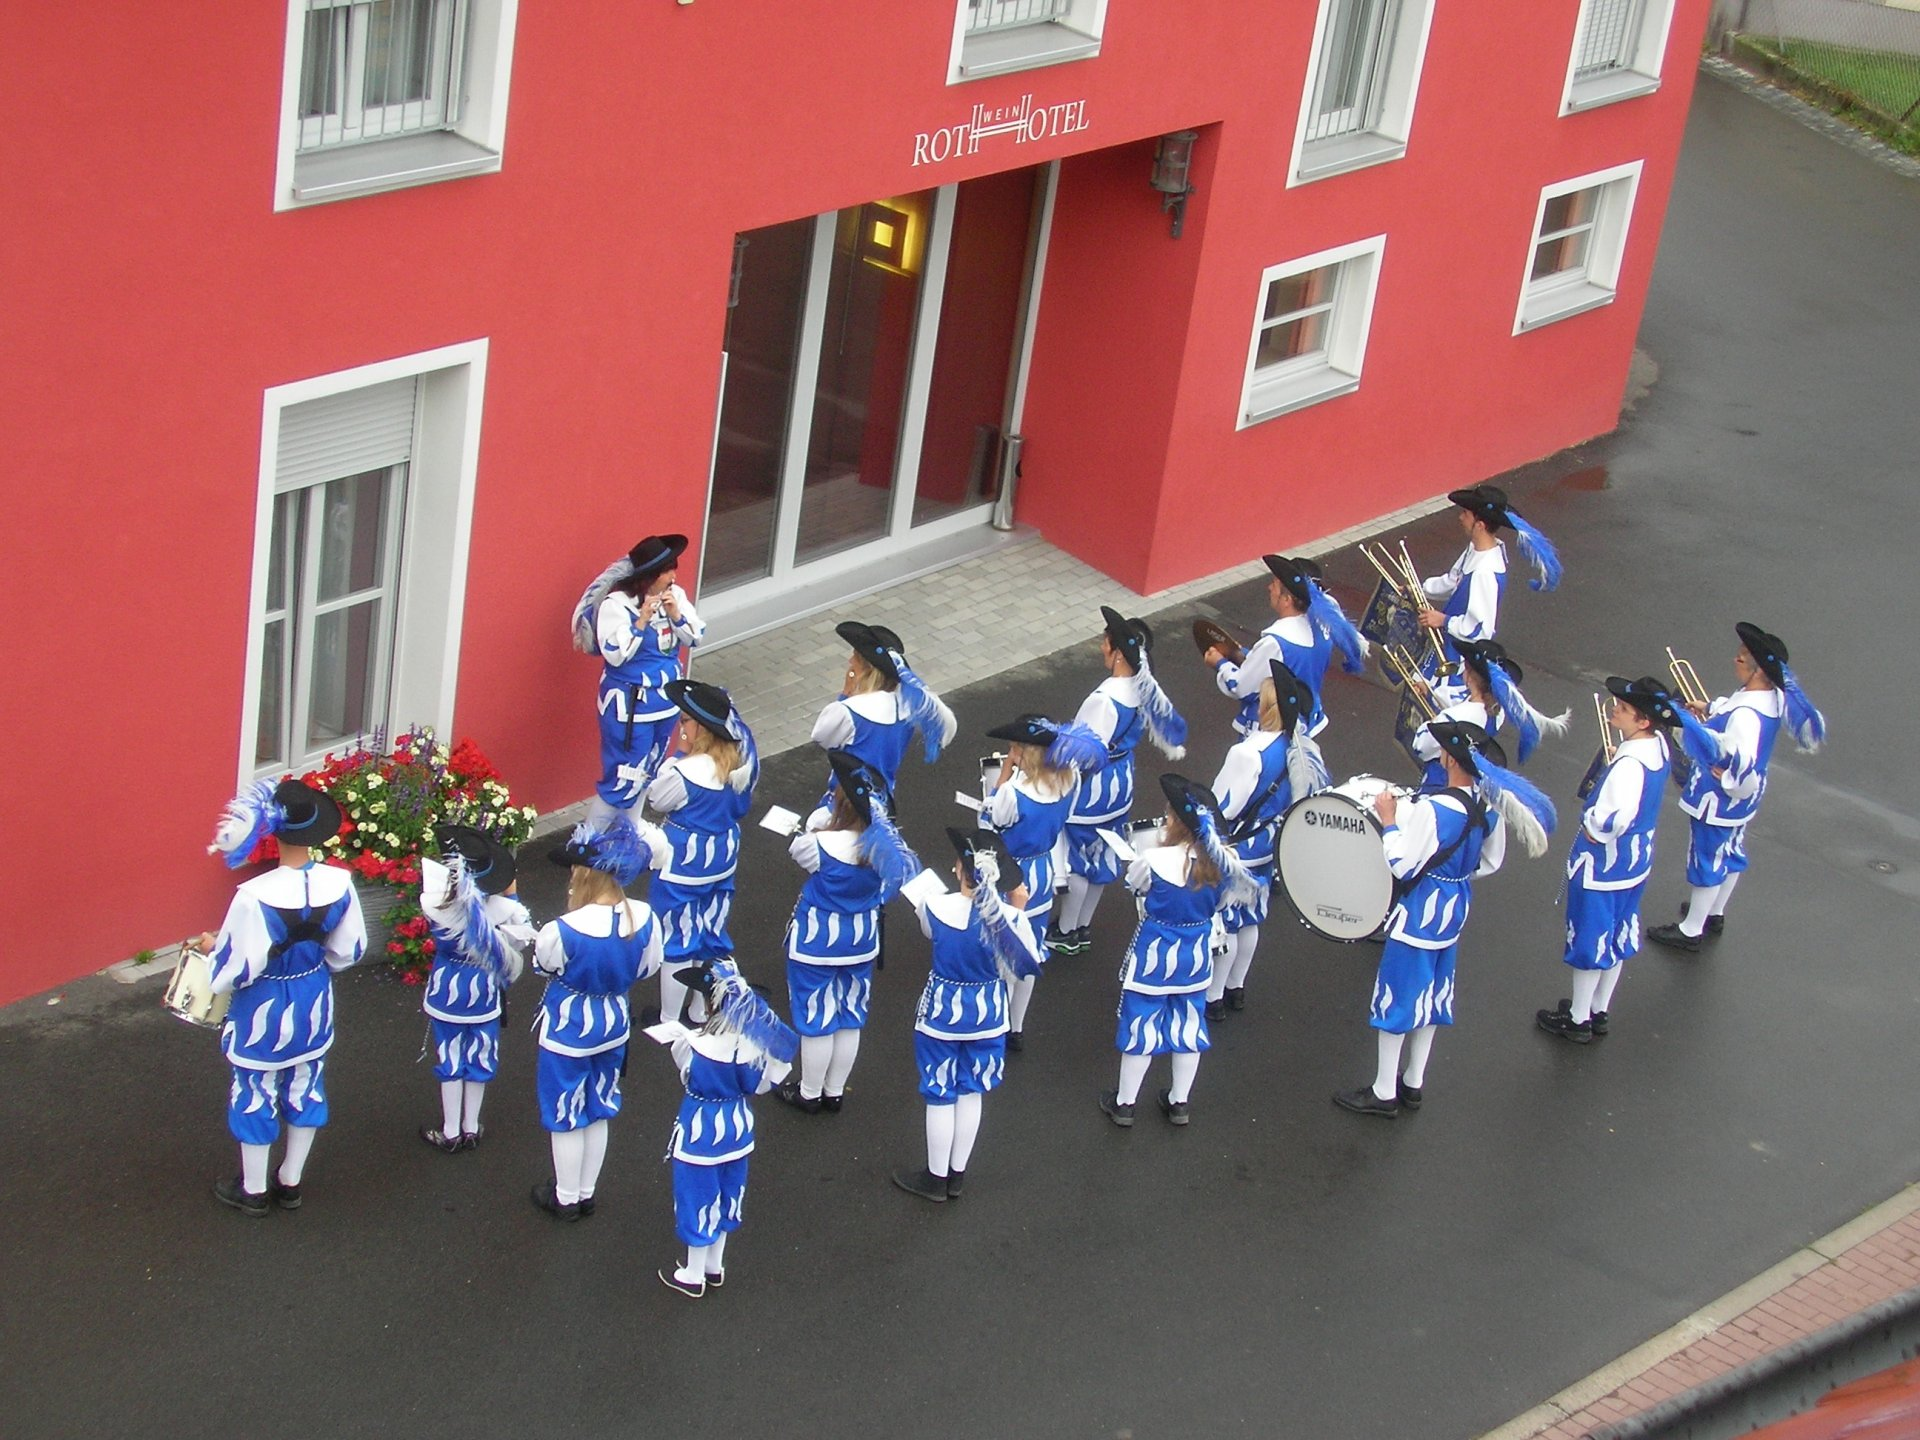 September 2013 - a serenade of the Wiesenbronn marching band